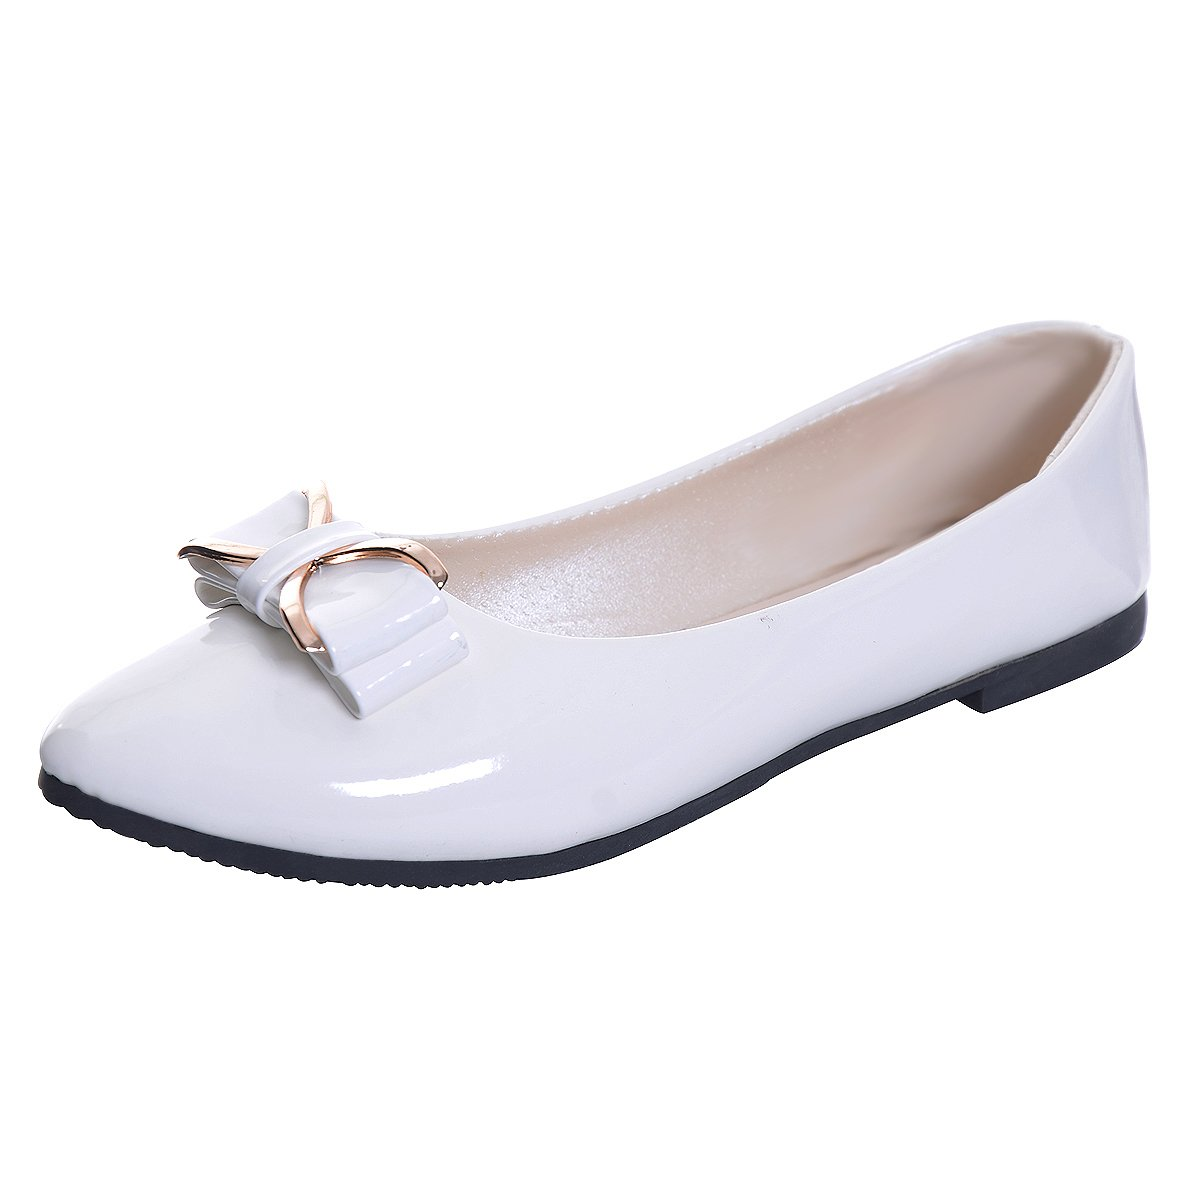 JACKY LUYI Women Pointy Toe Bowknot Slip-on Ballet Flats